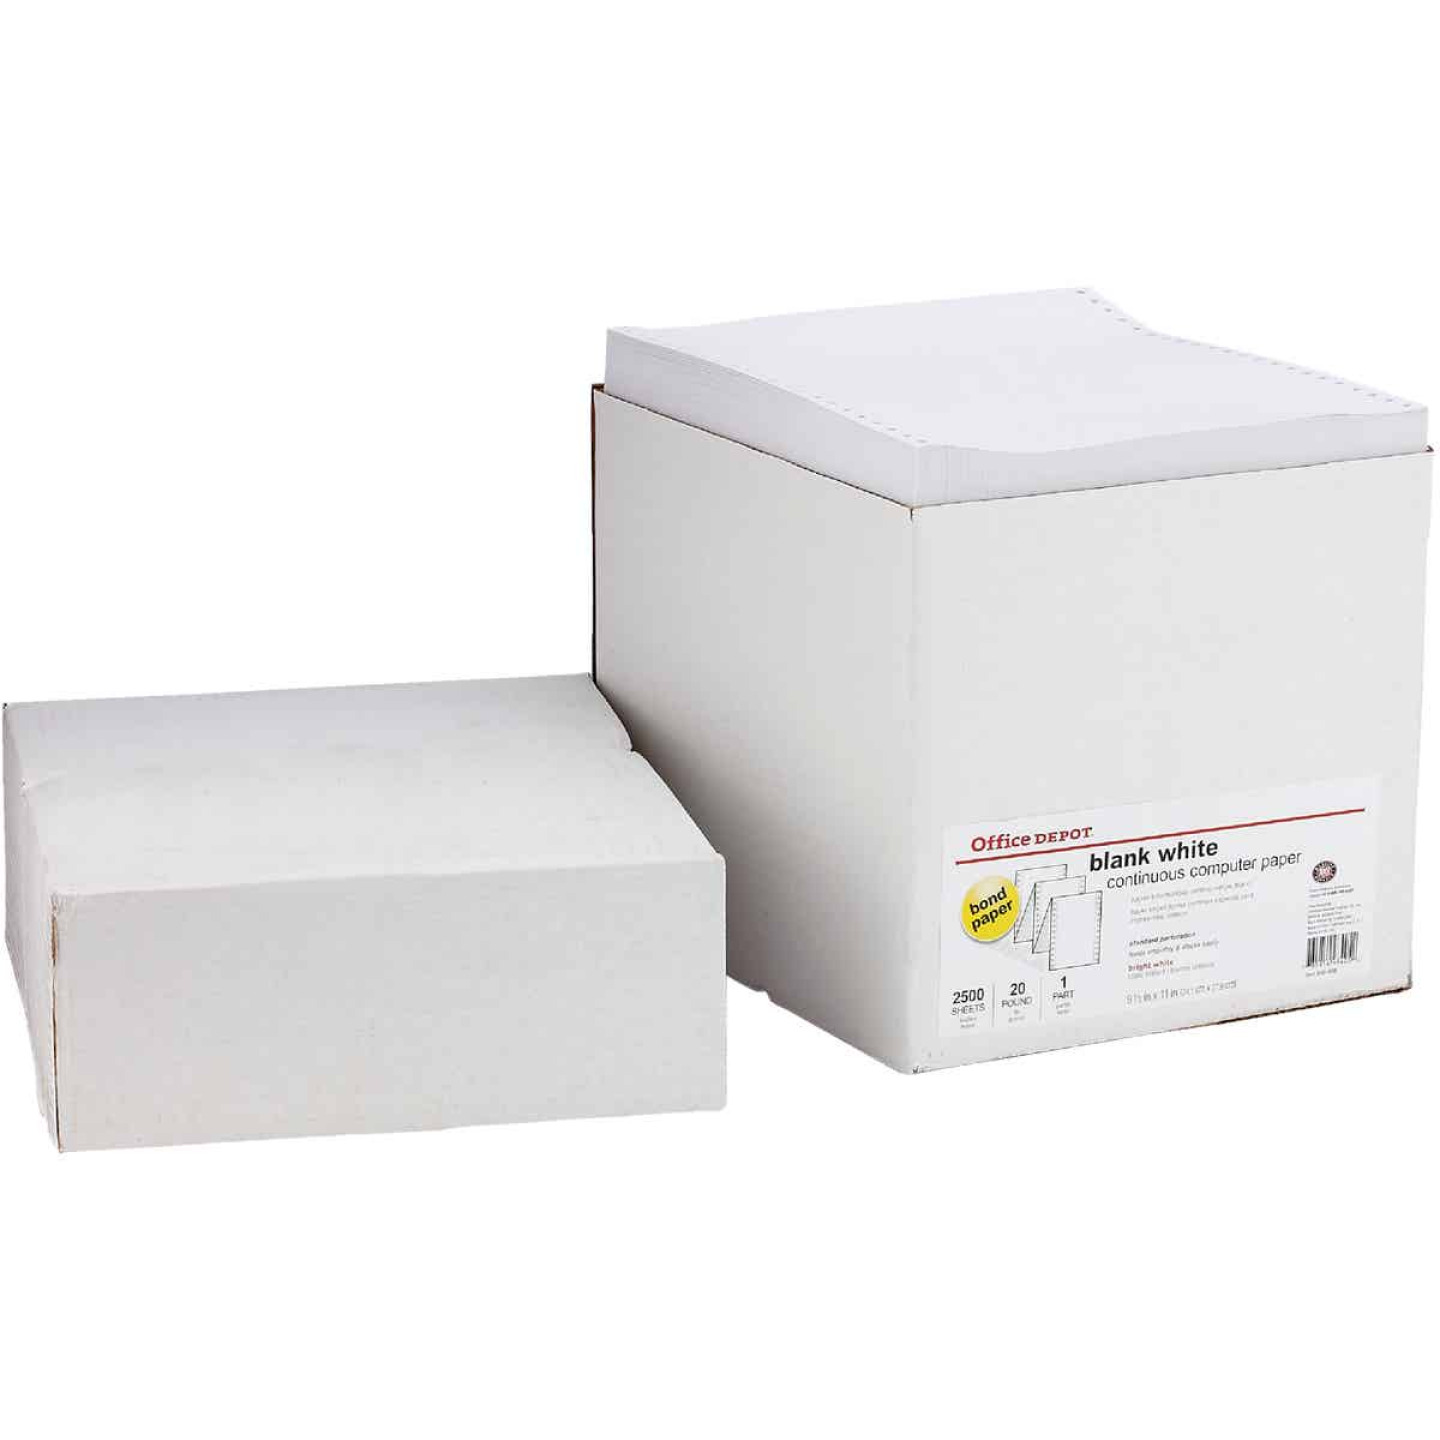 Staples 8-1/2 In. x 11 In. 20 Lb. White Blank Computer Printer Paper, 2500 Sheets Image 3